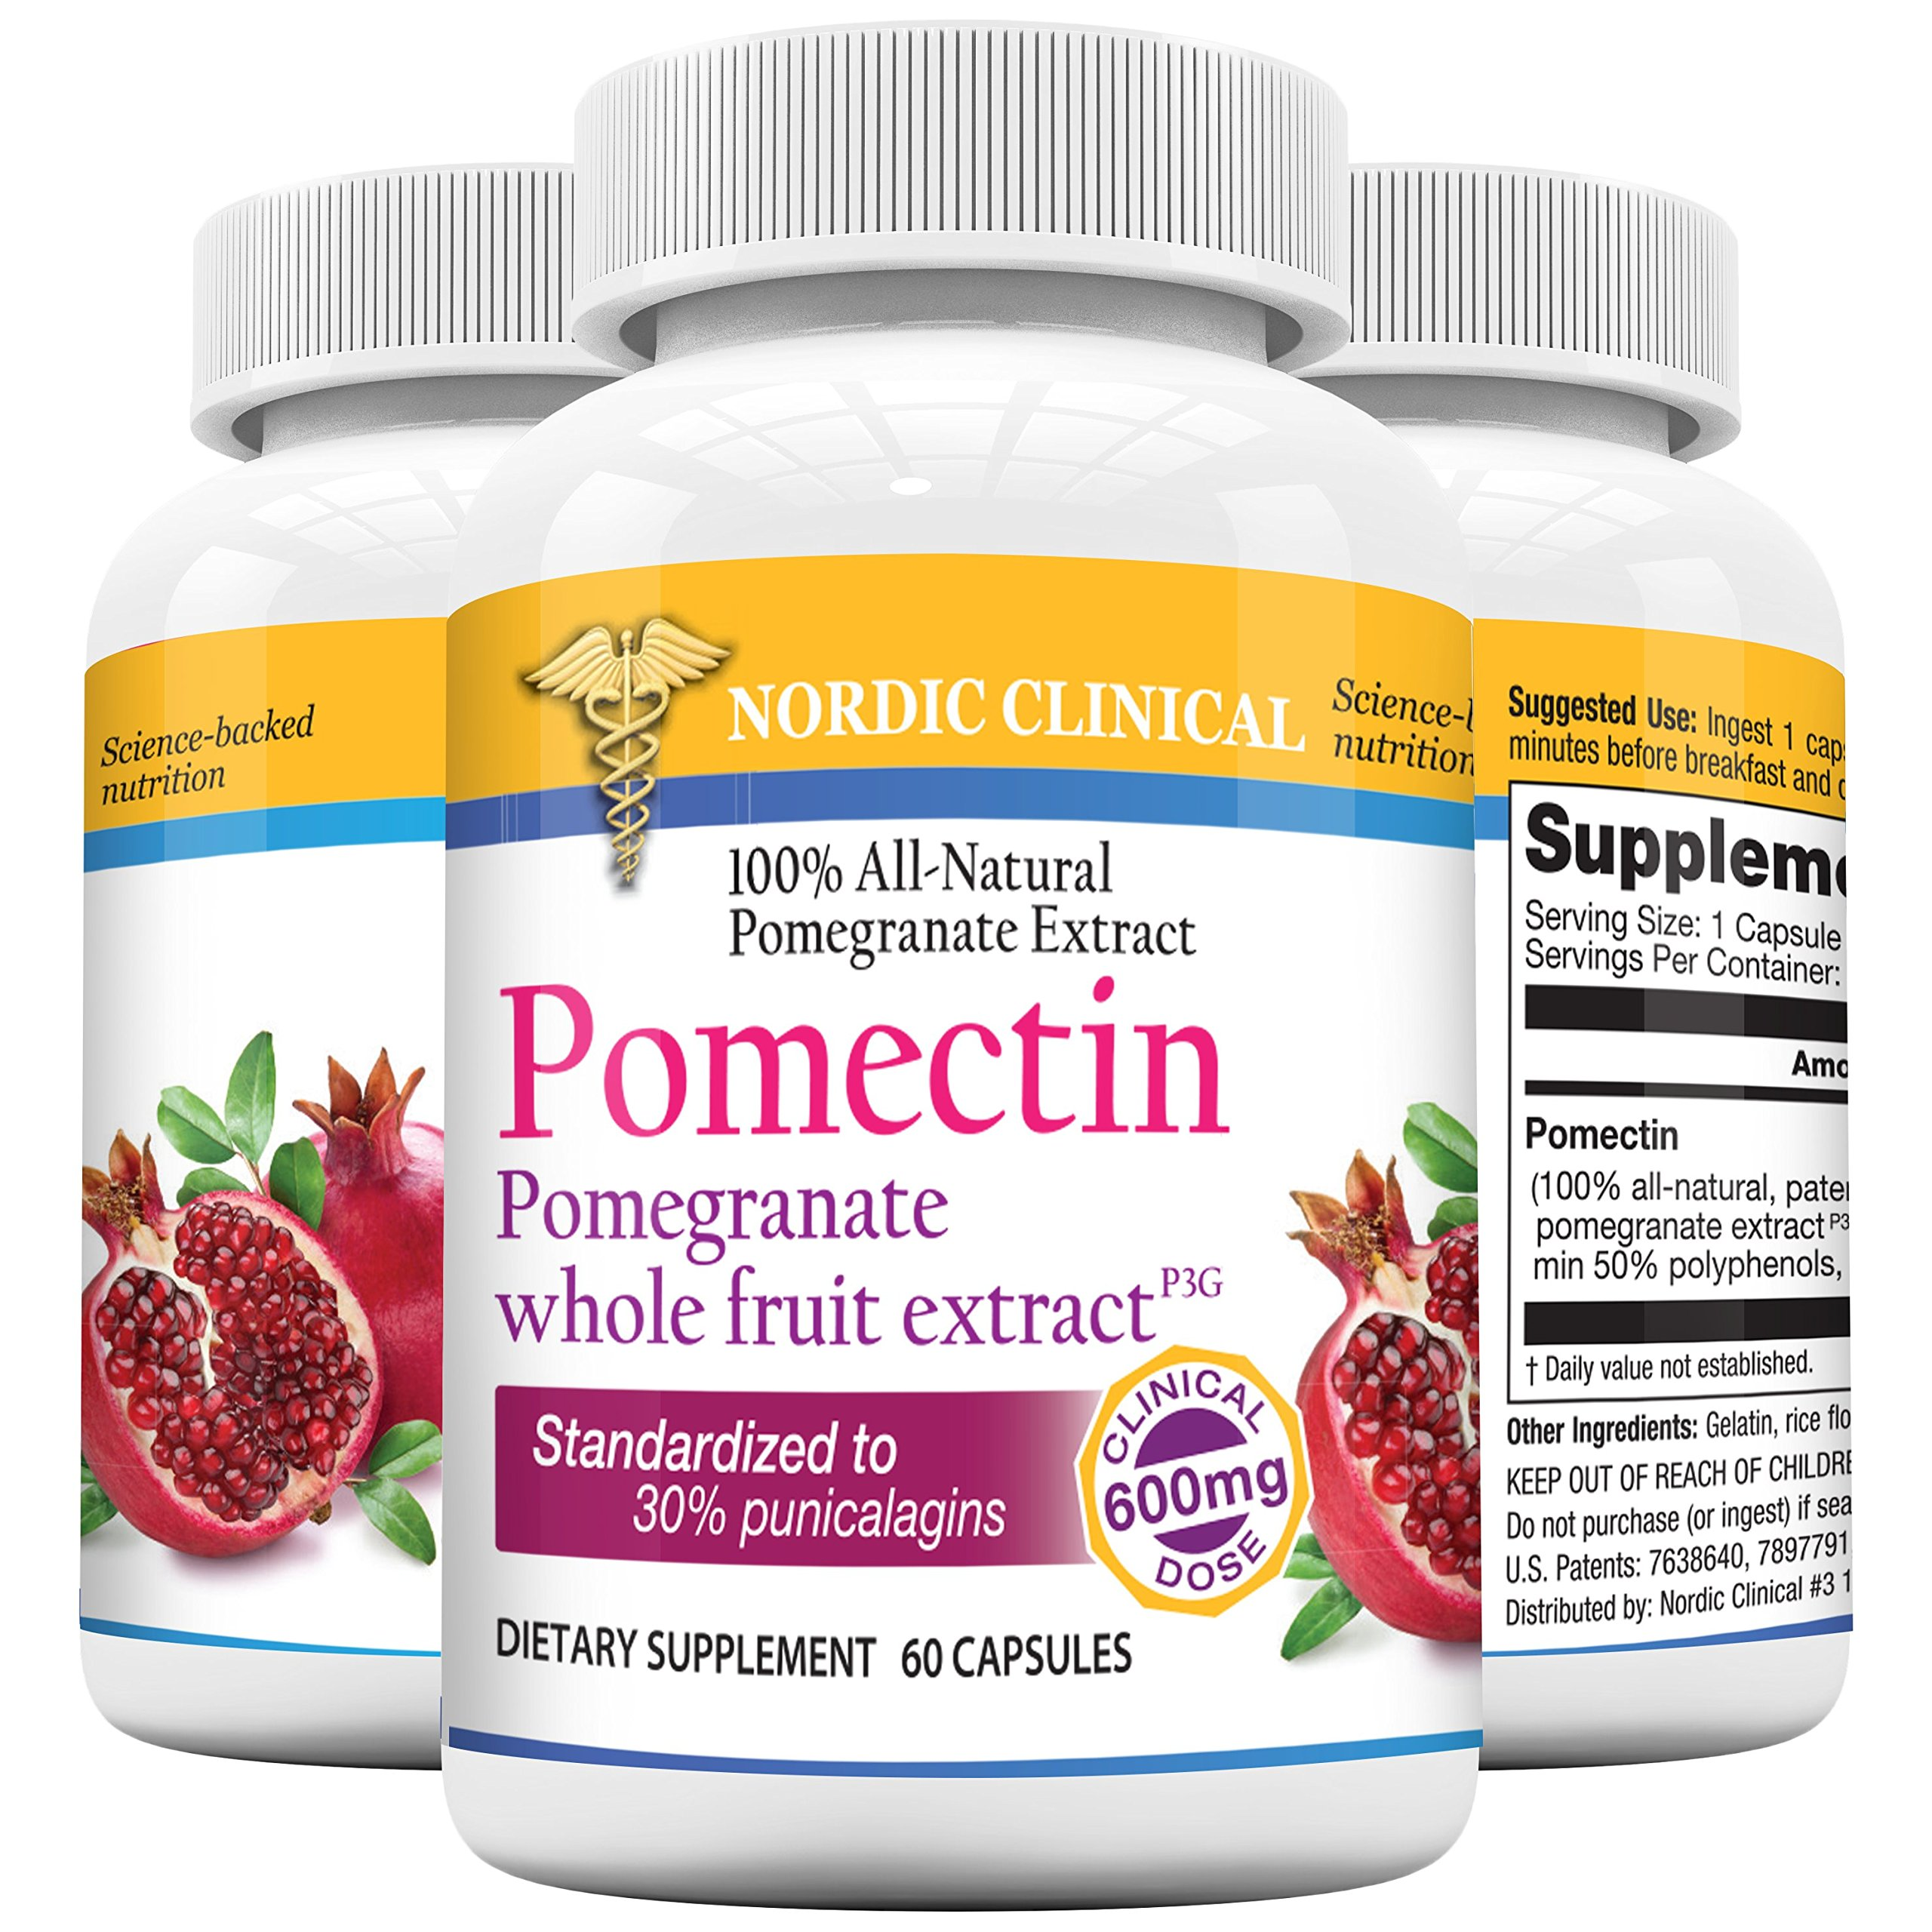 Nordic Clinical's Pomectin - Pomegranate whole fruit extract 600mg dose - Powerful antioxidant - 60 Softgels